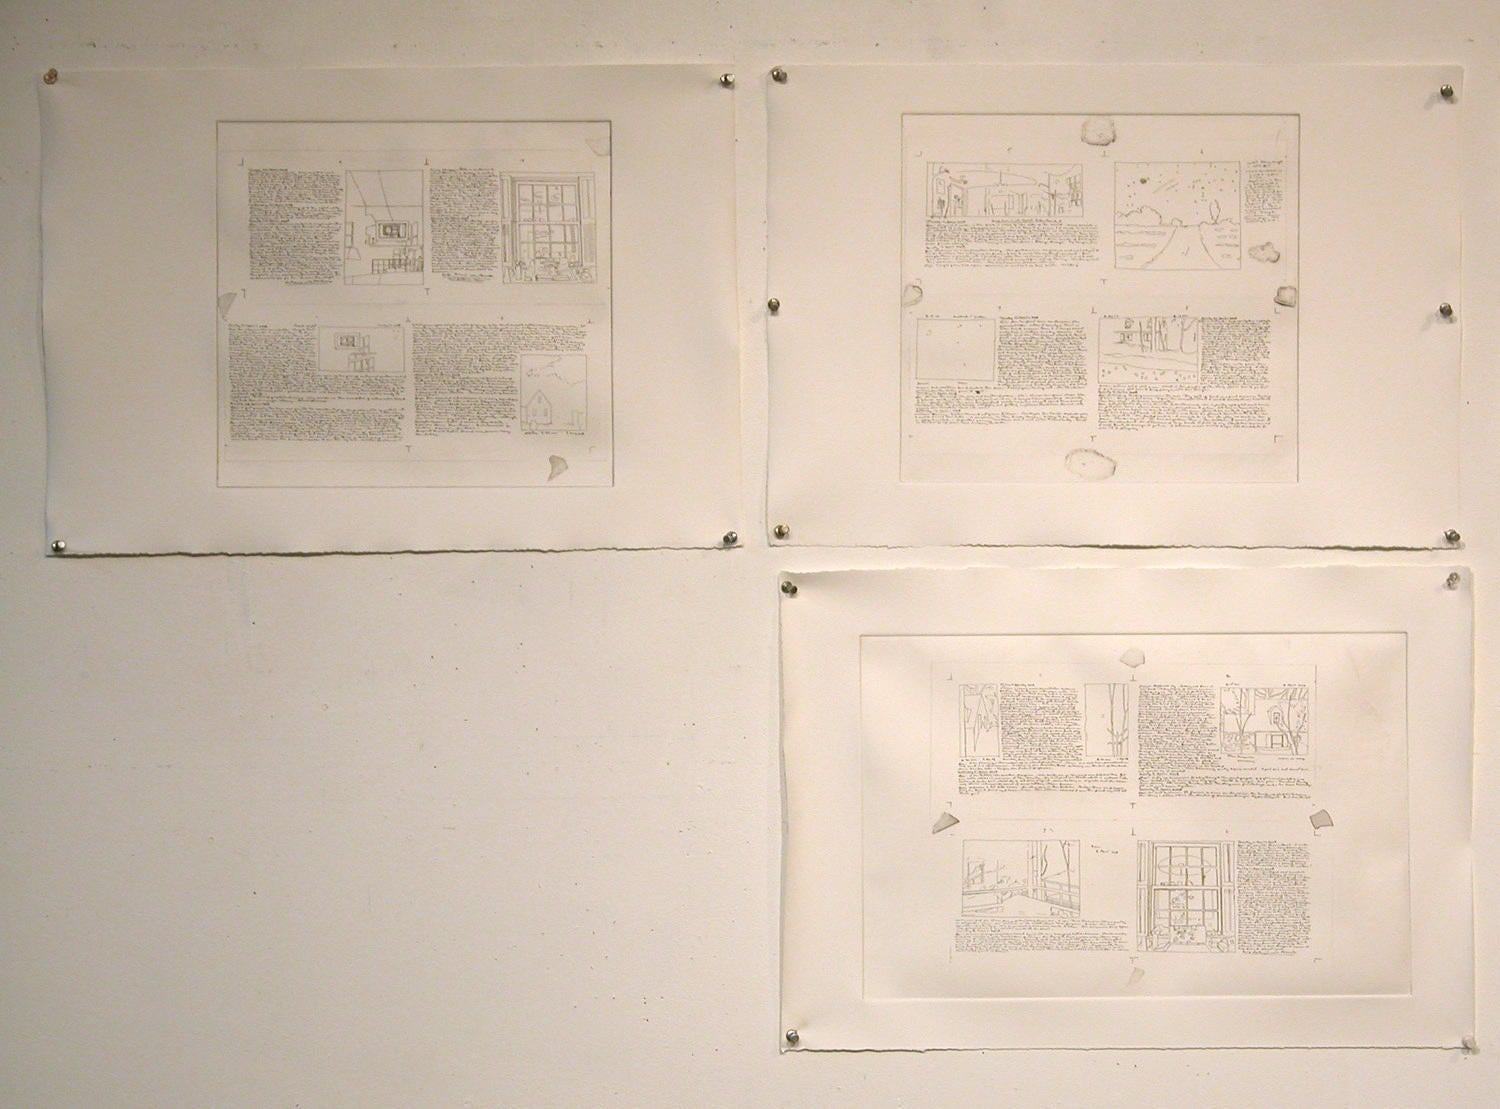 Three Etchings for Accordion Book Project image